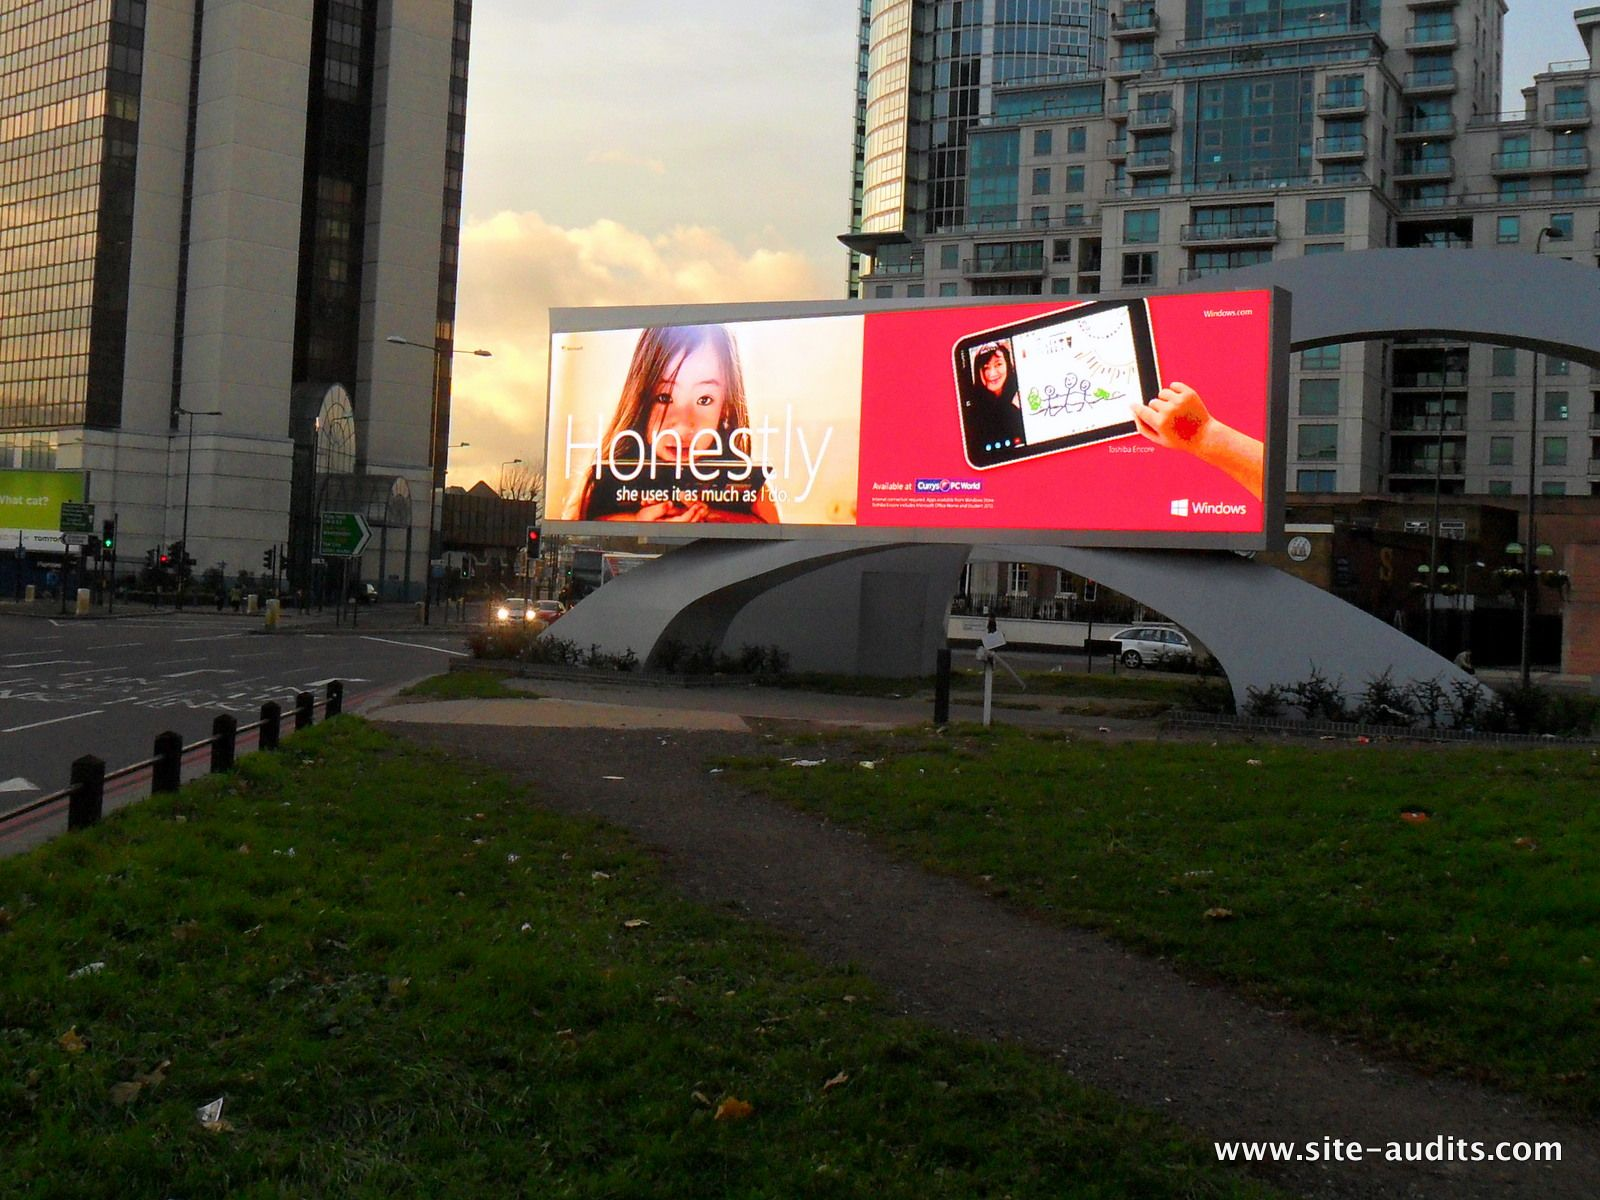 Christmas gift ideas (e.g. tablets) available at PC World and Currys, here seen at Outdoor Plus' iconic digital installation.